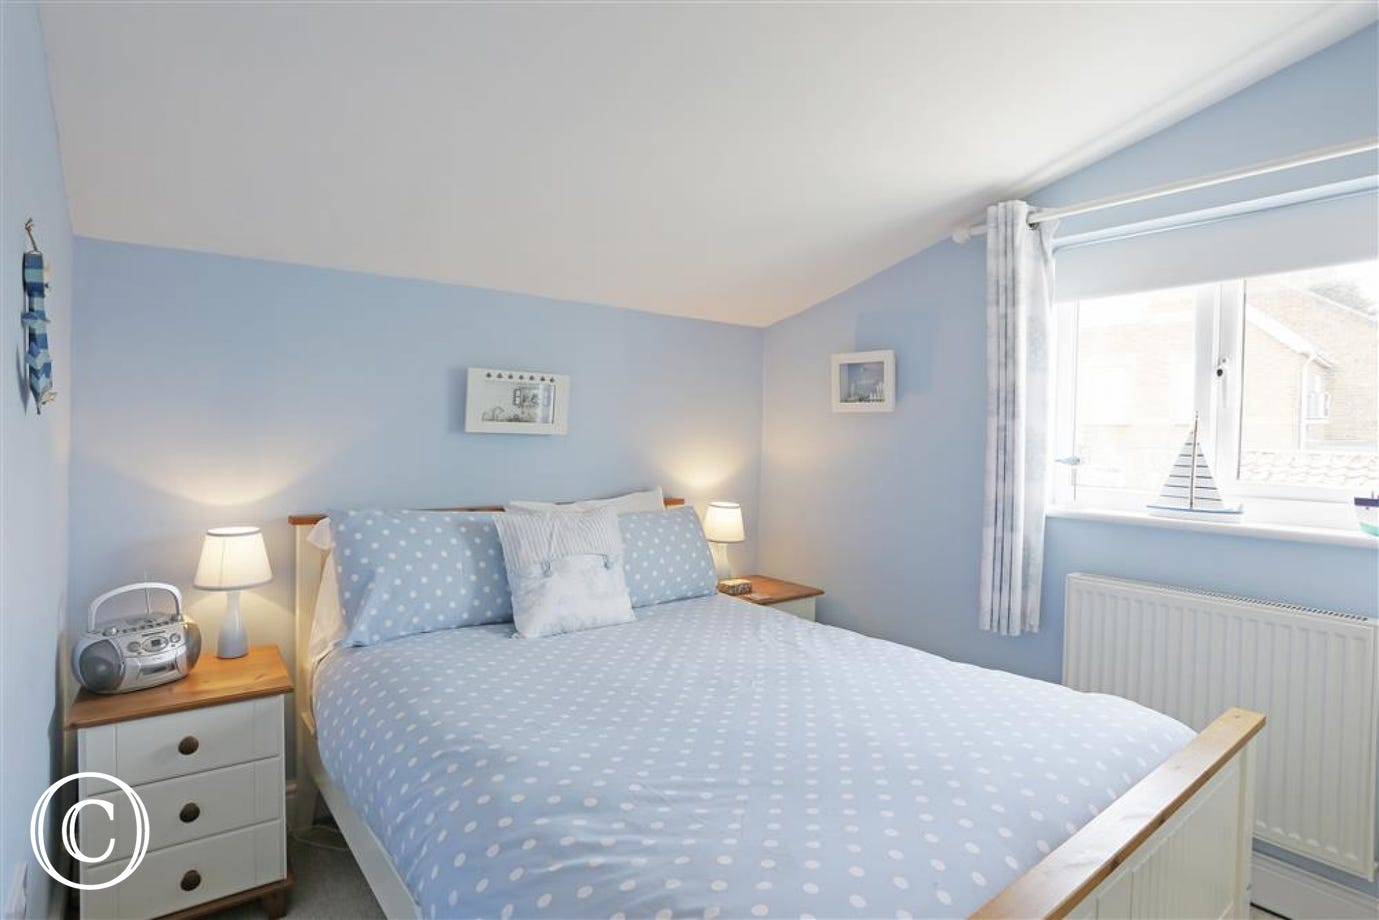 This room which is one of three bedrooms has a double bed and serene aura.